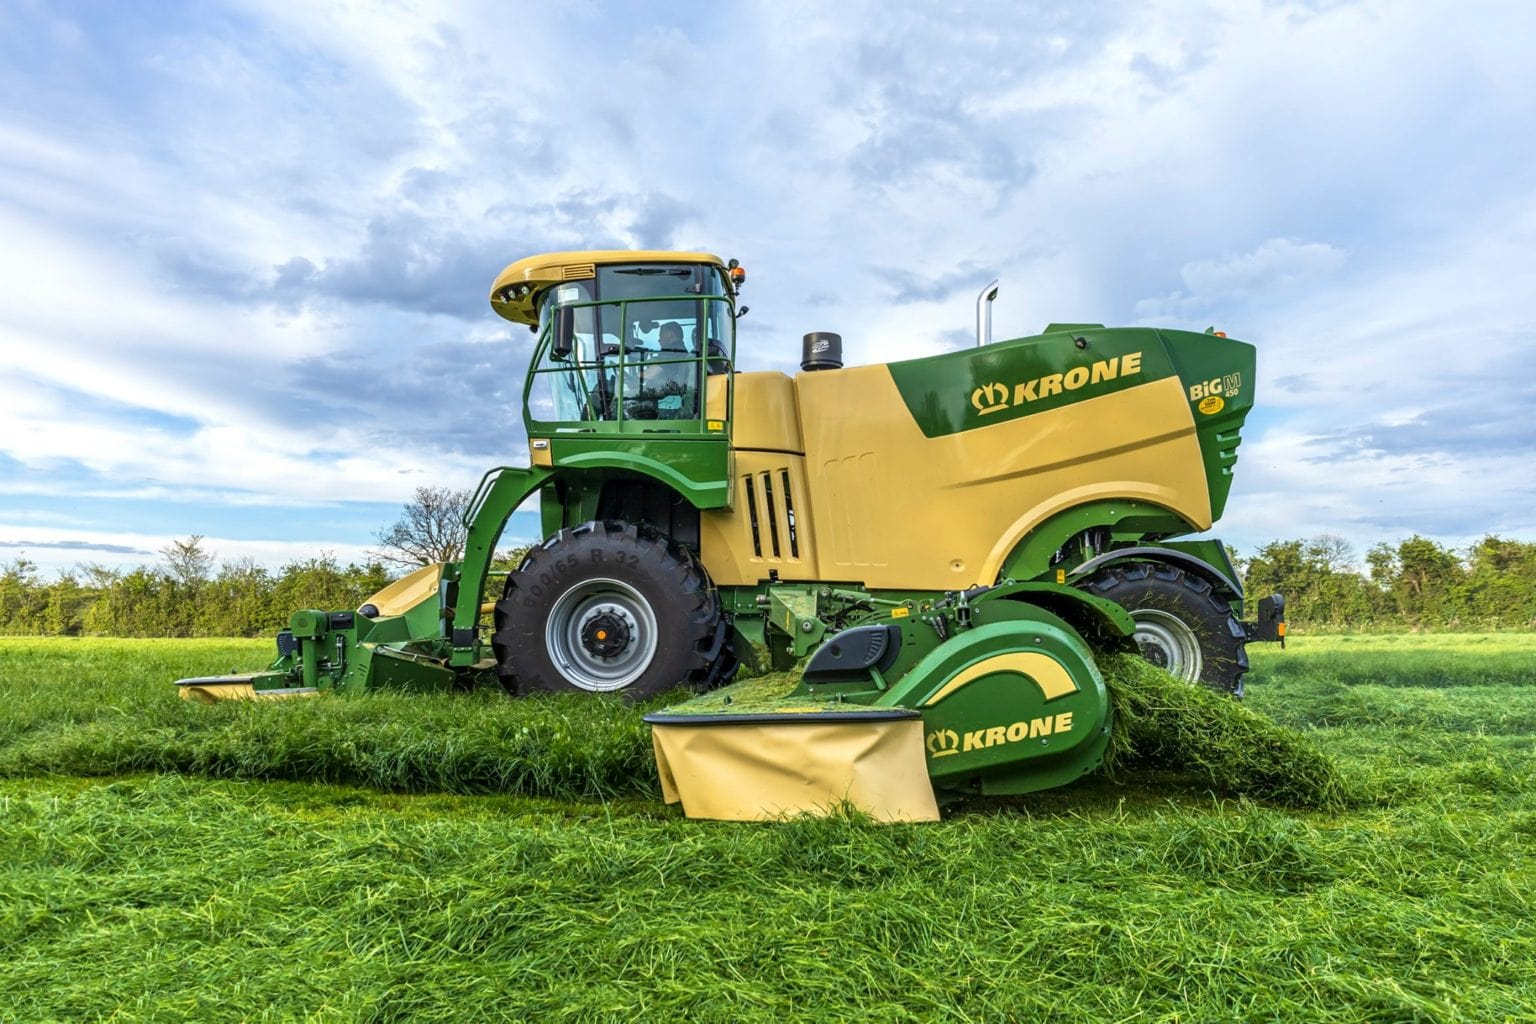 KRONE Big M 450 Self Propelled Mower Conditioner